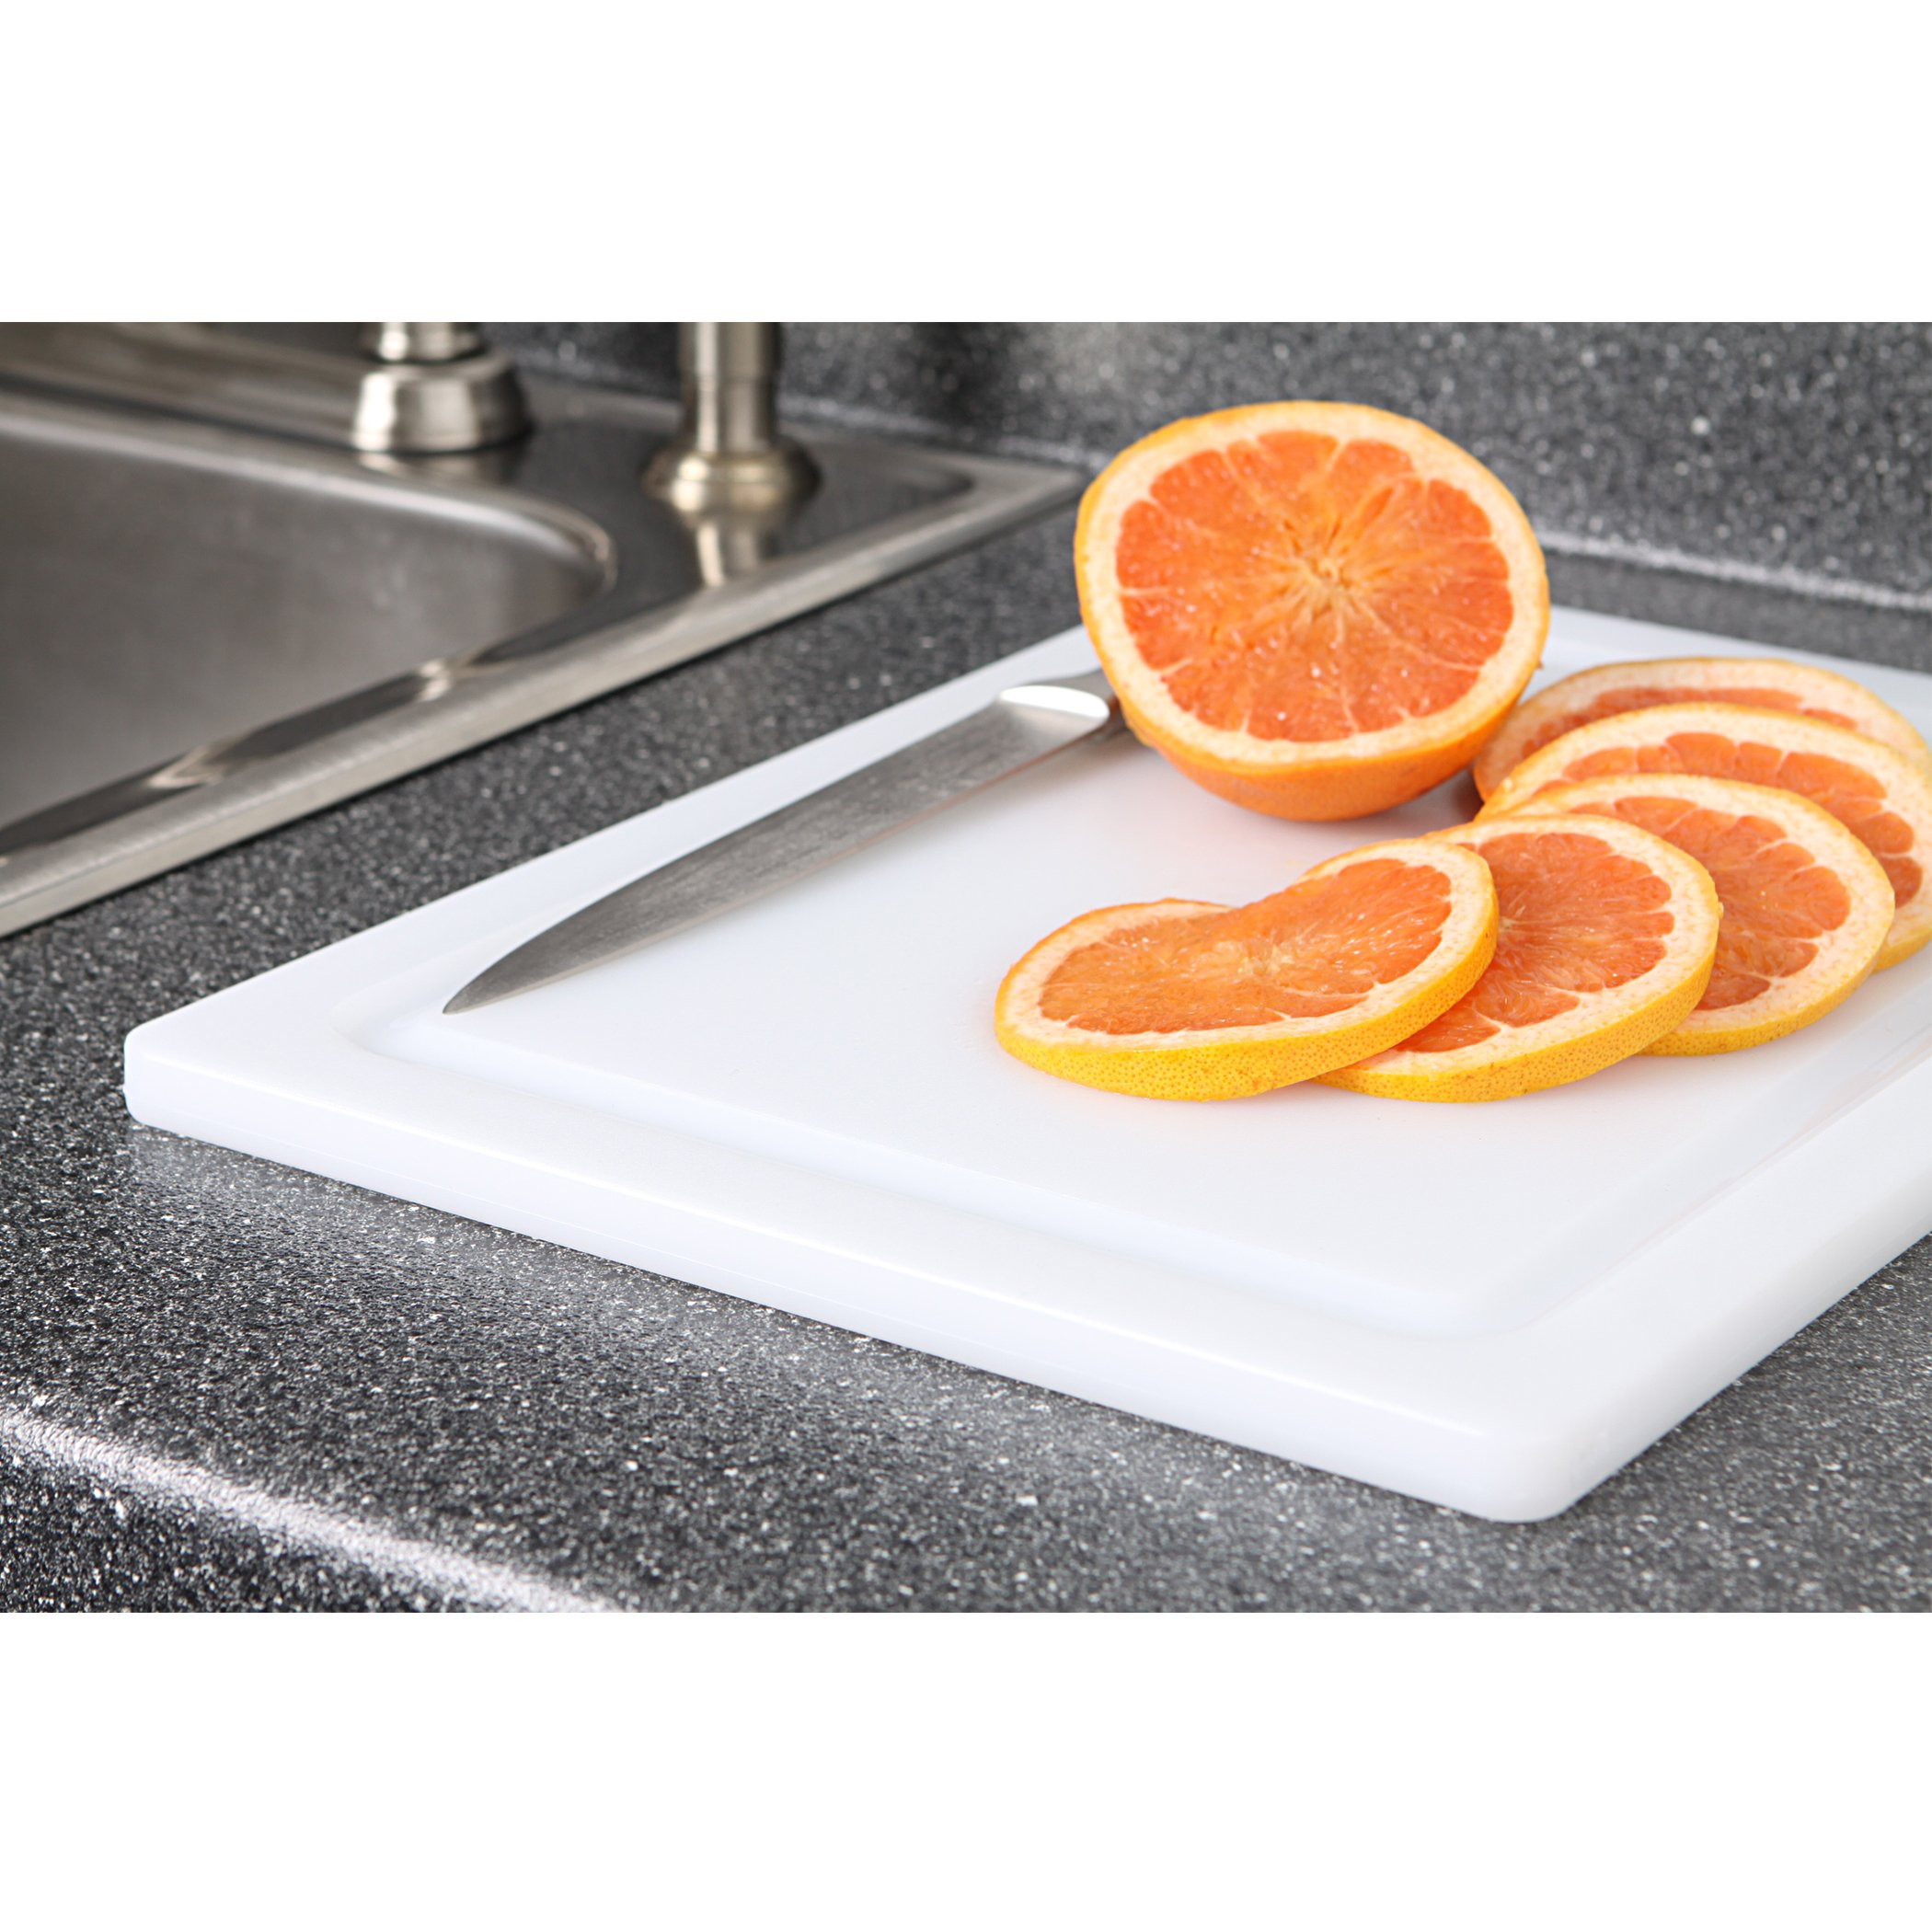 Dexas 4525-133 Nsf Approved Poly Cutting Board with Juice Well,12 x 16 x 5/8 Inches, White by Dexas (Image #2)